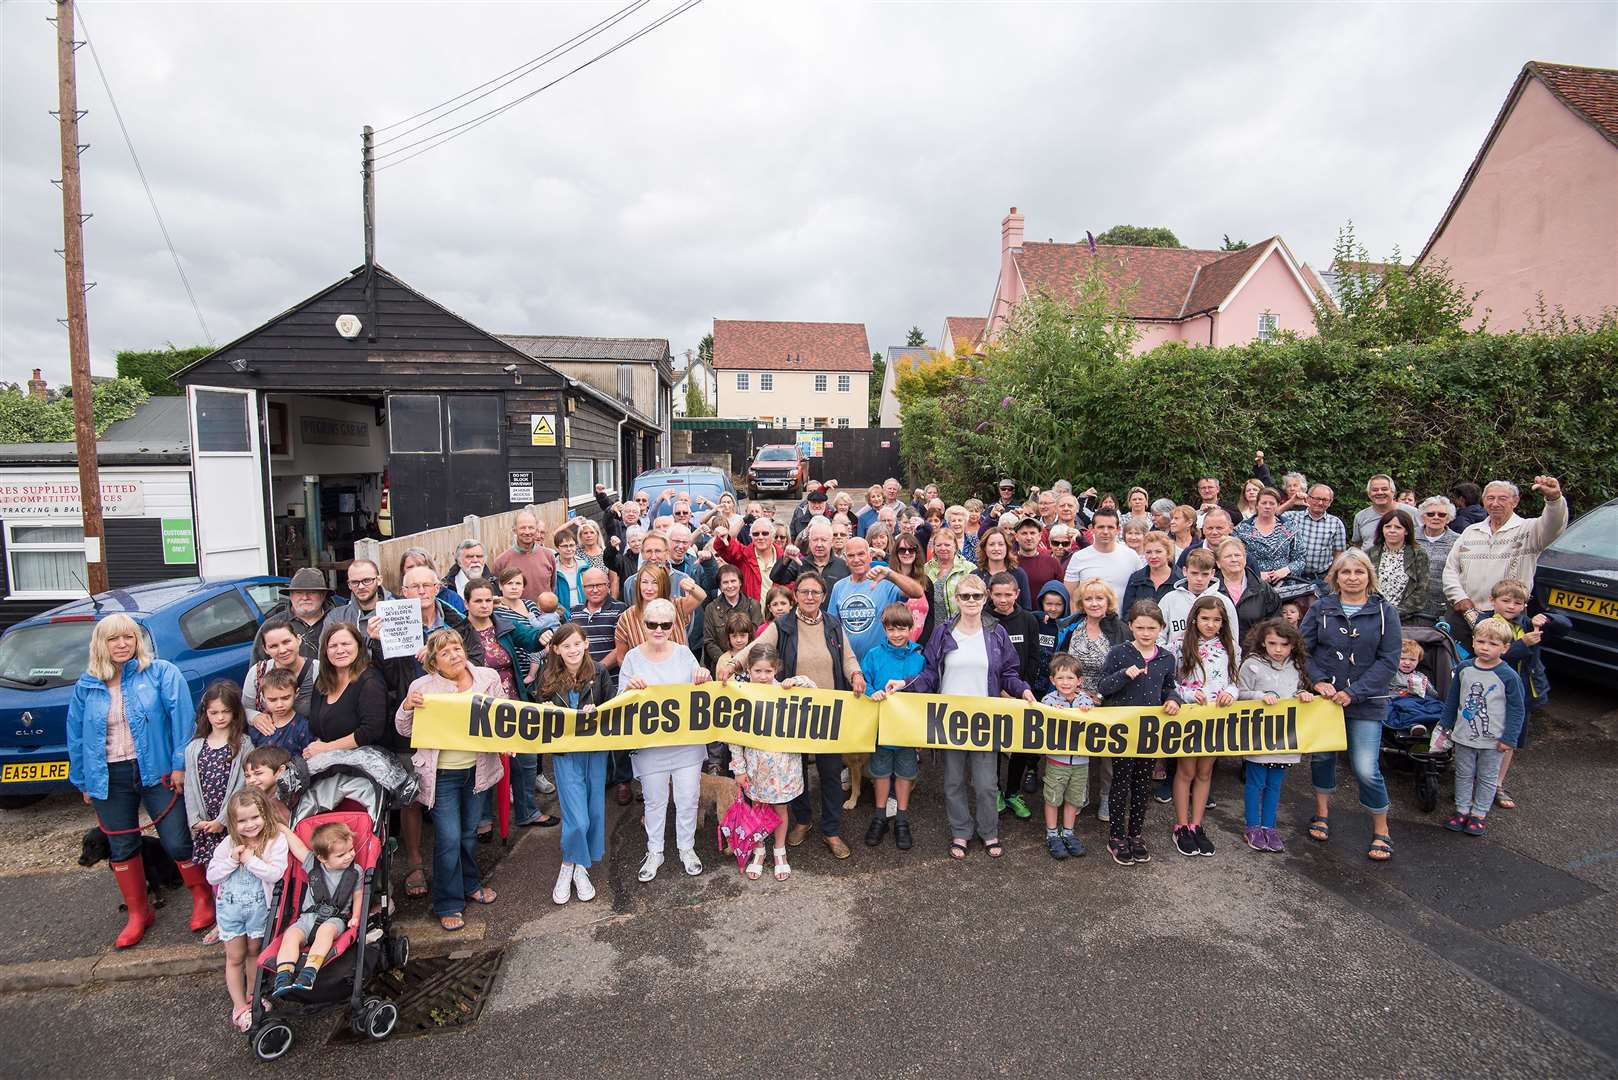 BURES: Protest.Pilgrims Garage, Cuckoo Hill, Bures.Bures residents are holding a silent protest, as Babergh planners visit the site of a controversial partially-built housing development in Cuckoo Hill, which is seeking retrospective permission. Picture by Mark Westley. (30942924)